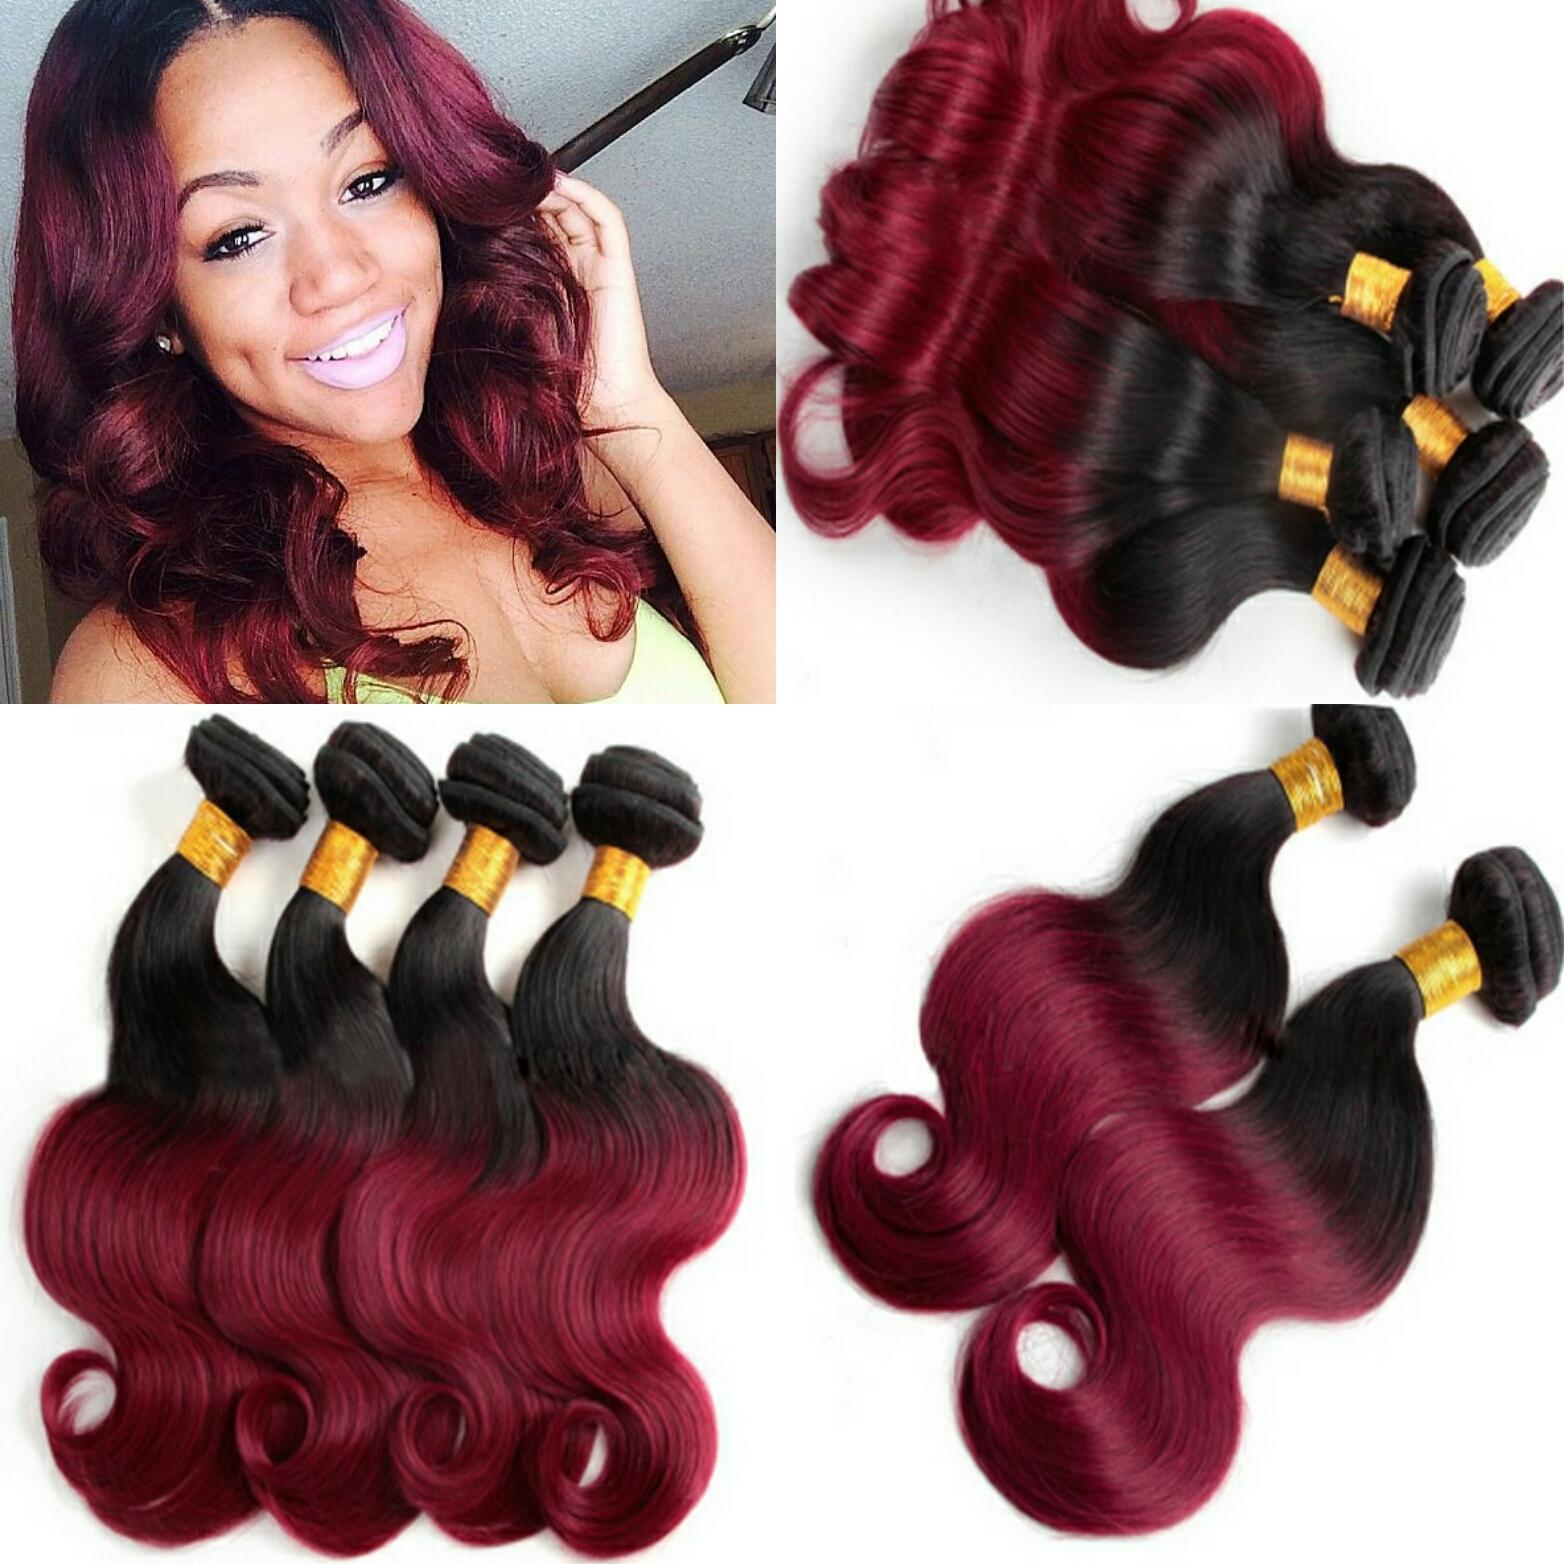 Ombre brazilian hair burgundy brazilian ombre virgin hair weave weave grade 7a 100 virgin brazilian hair body wave red brazilian remy hair weft ombre black burgundy online with 7429piece on winnie284565183s store pmusecretfo Image collections